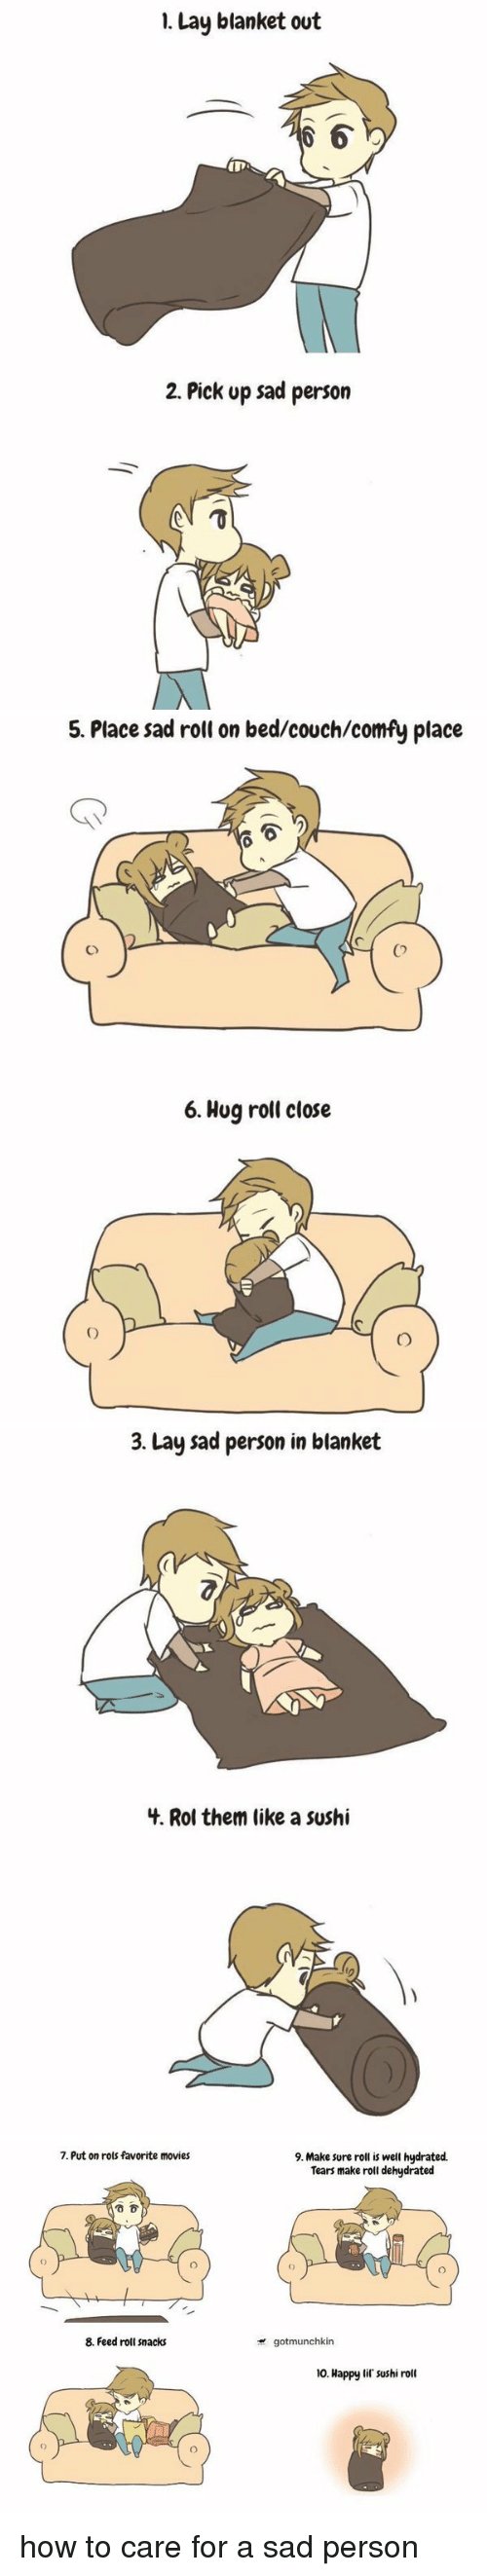 Lay's, Movies, and Ups: I. Lay blanket out  2. Pick up sad person   5. Place sad roll on bed/couch/comfy place  6. Hug roll close   3. Lay sad person in blanket  4. Rol them like a sushi   7. Put on rols favorite movies  8. Feed roll snacks  9. Make sure roll is well hydrated.  Tears make roll dehydrated  gotmunchkin  10. Happy Gil sushi roll how to care for a sad person